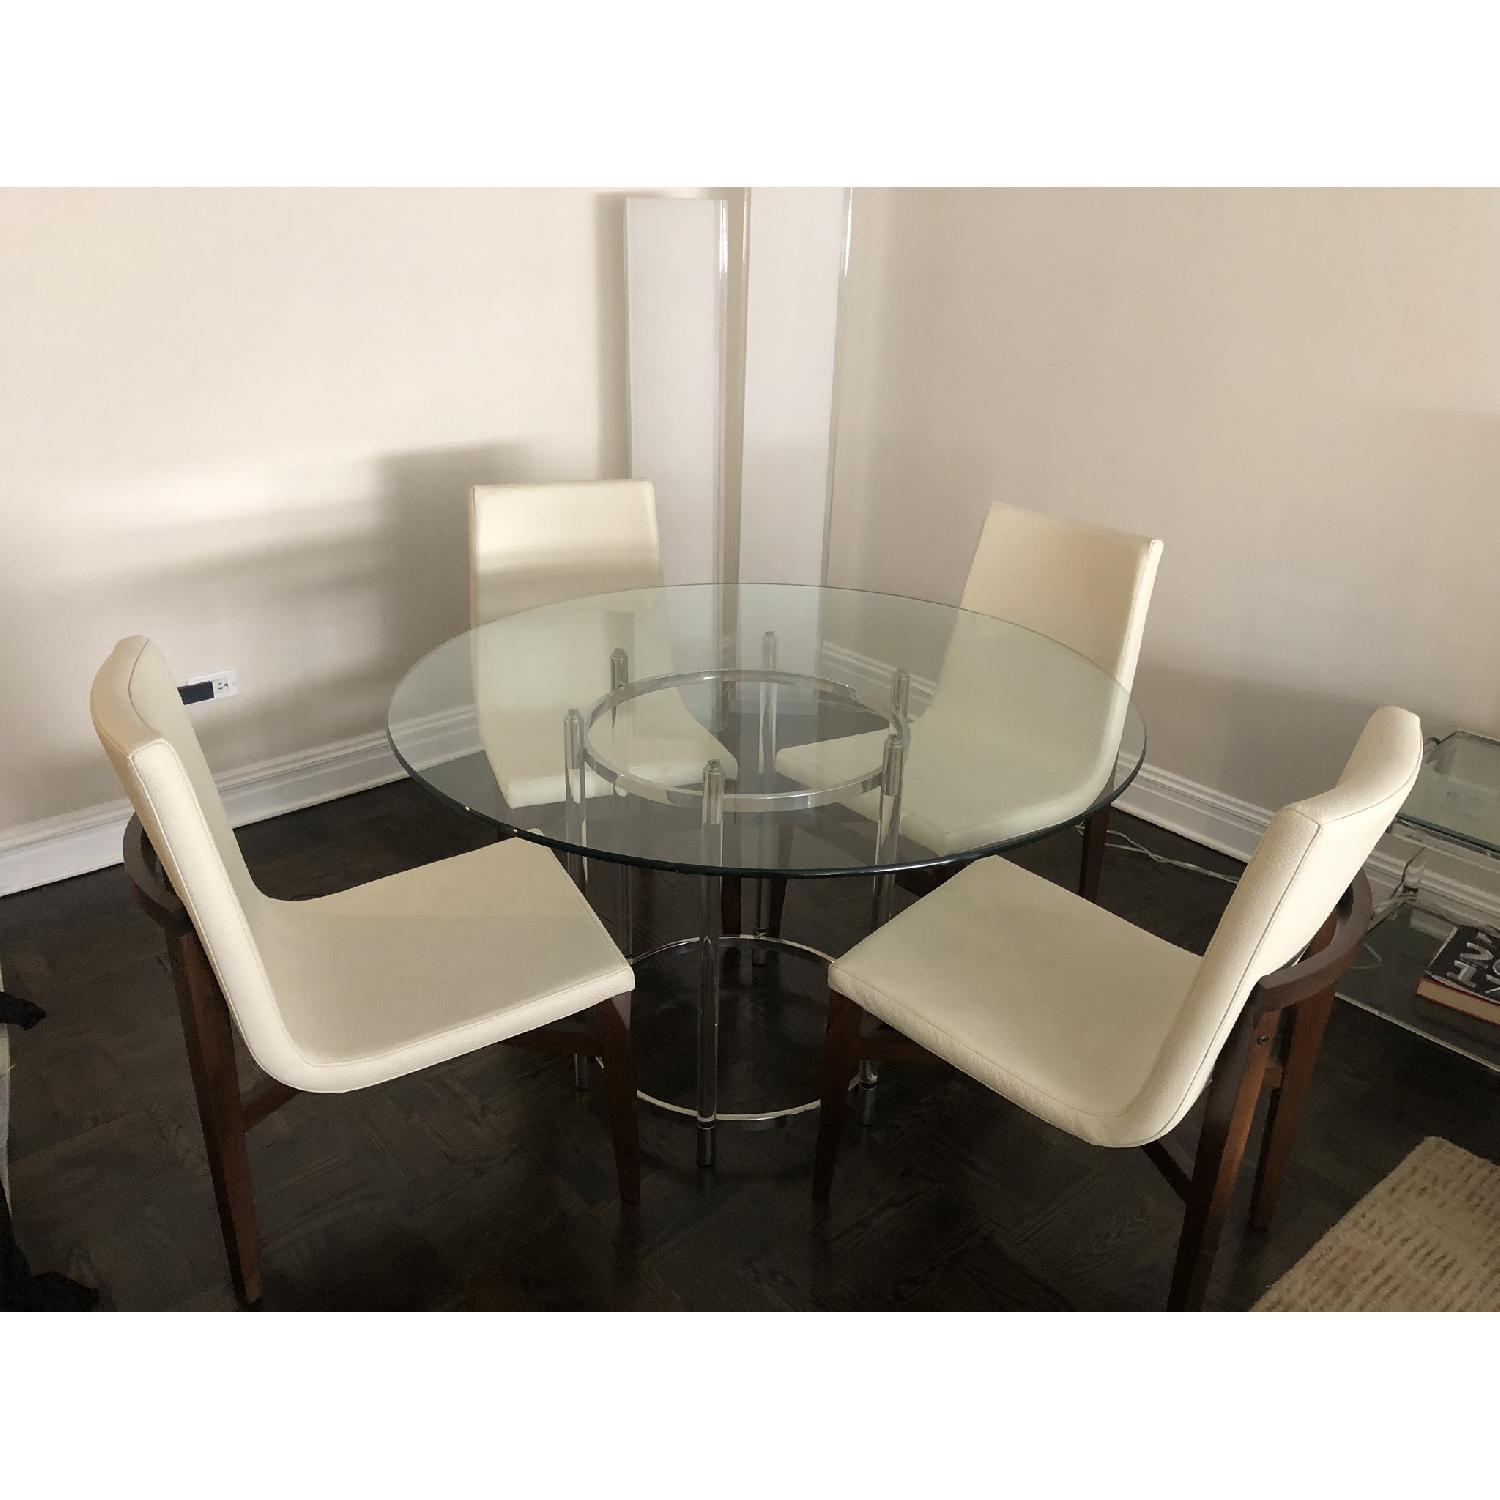 Glass Dining Table w/ 4 White Leather & Wood Dining Chairs - image-2